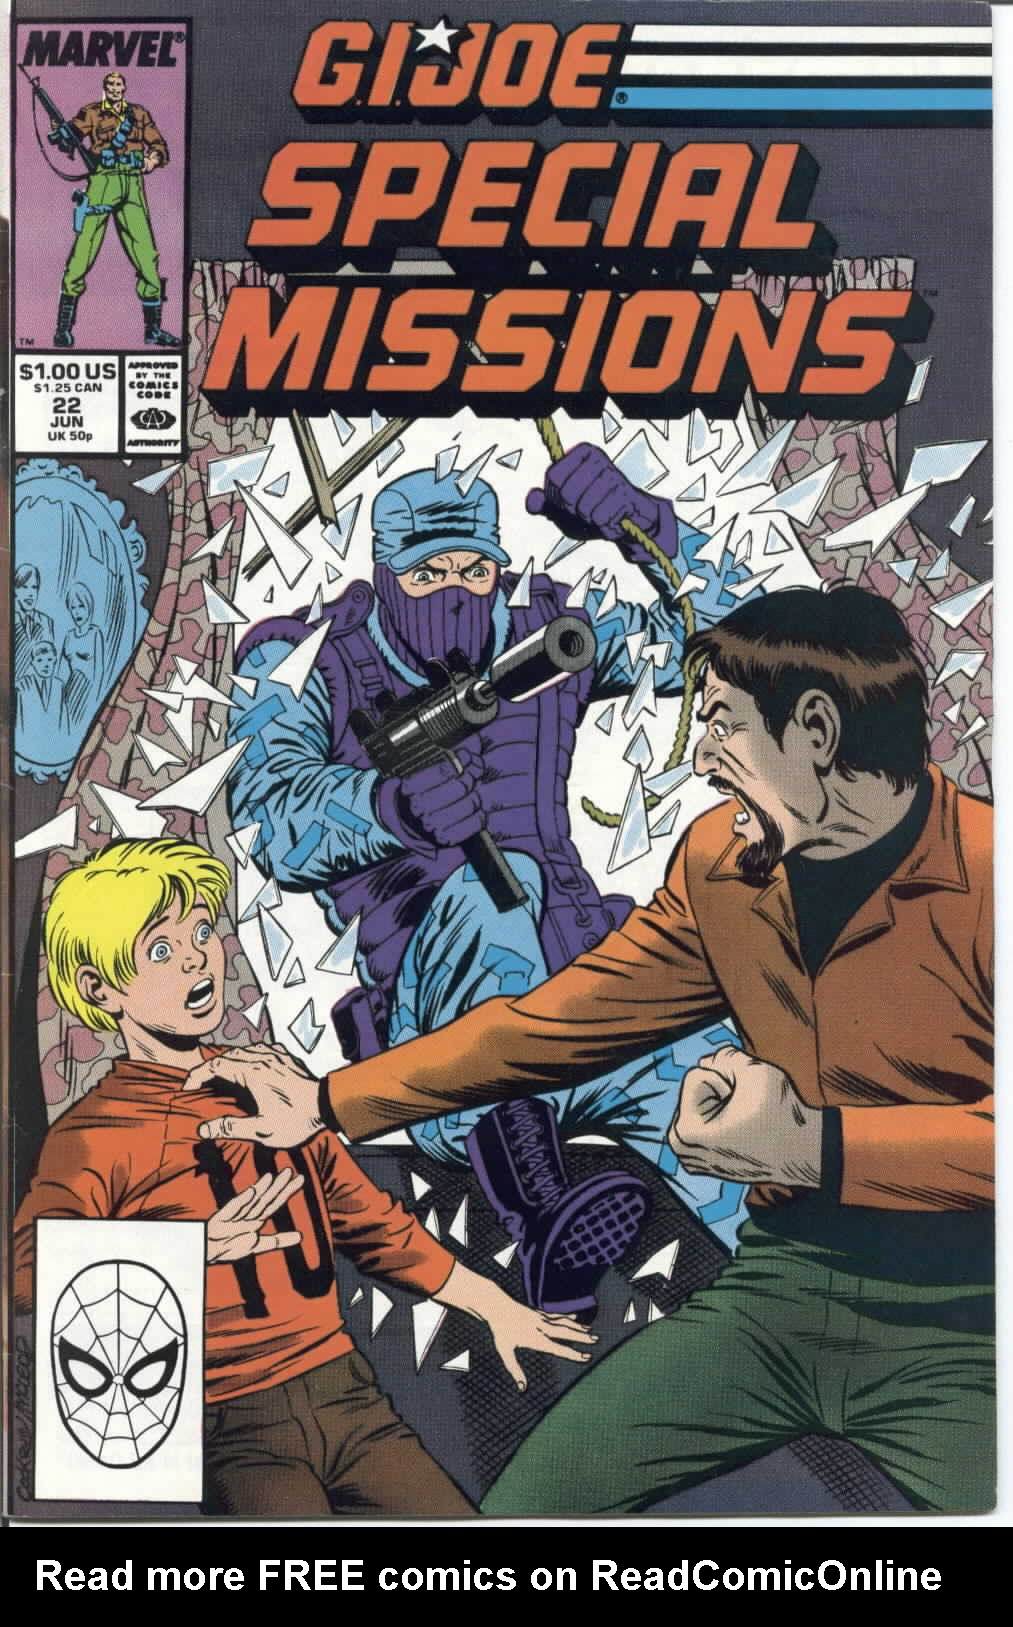 G.I. Joe Special Missions (1986) 22 Page 1